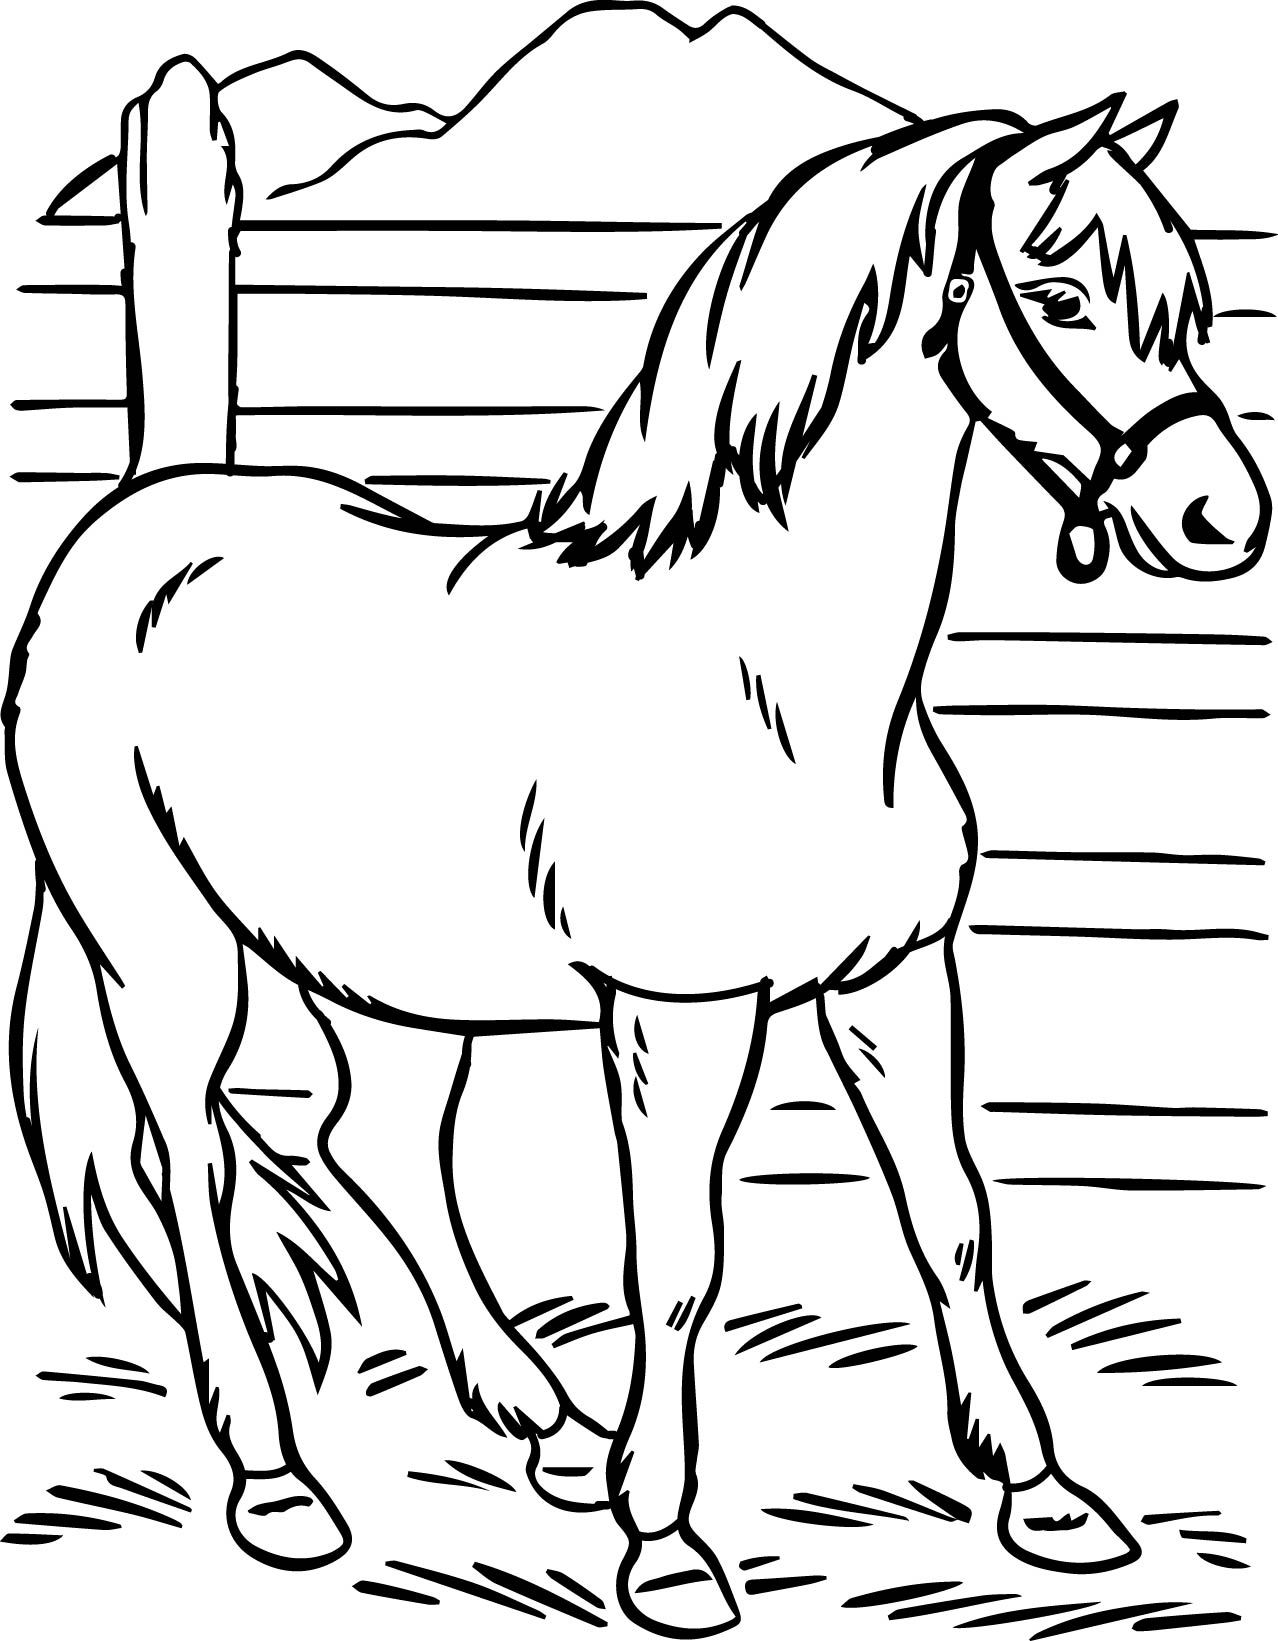 horse printables coloring pages horse coloring pages to download and print for free printables coloring horse pages